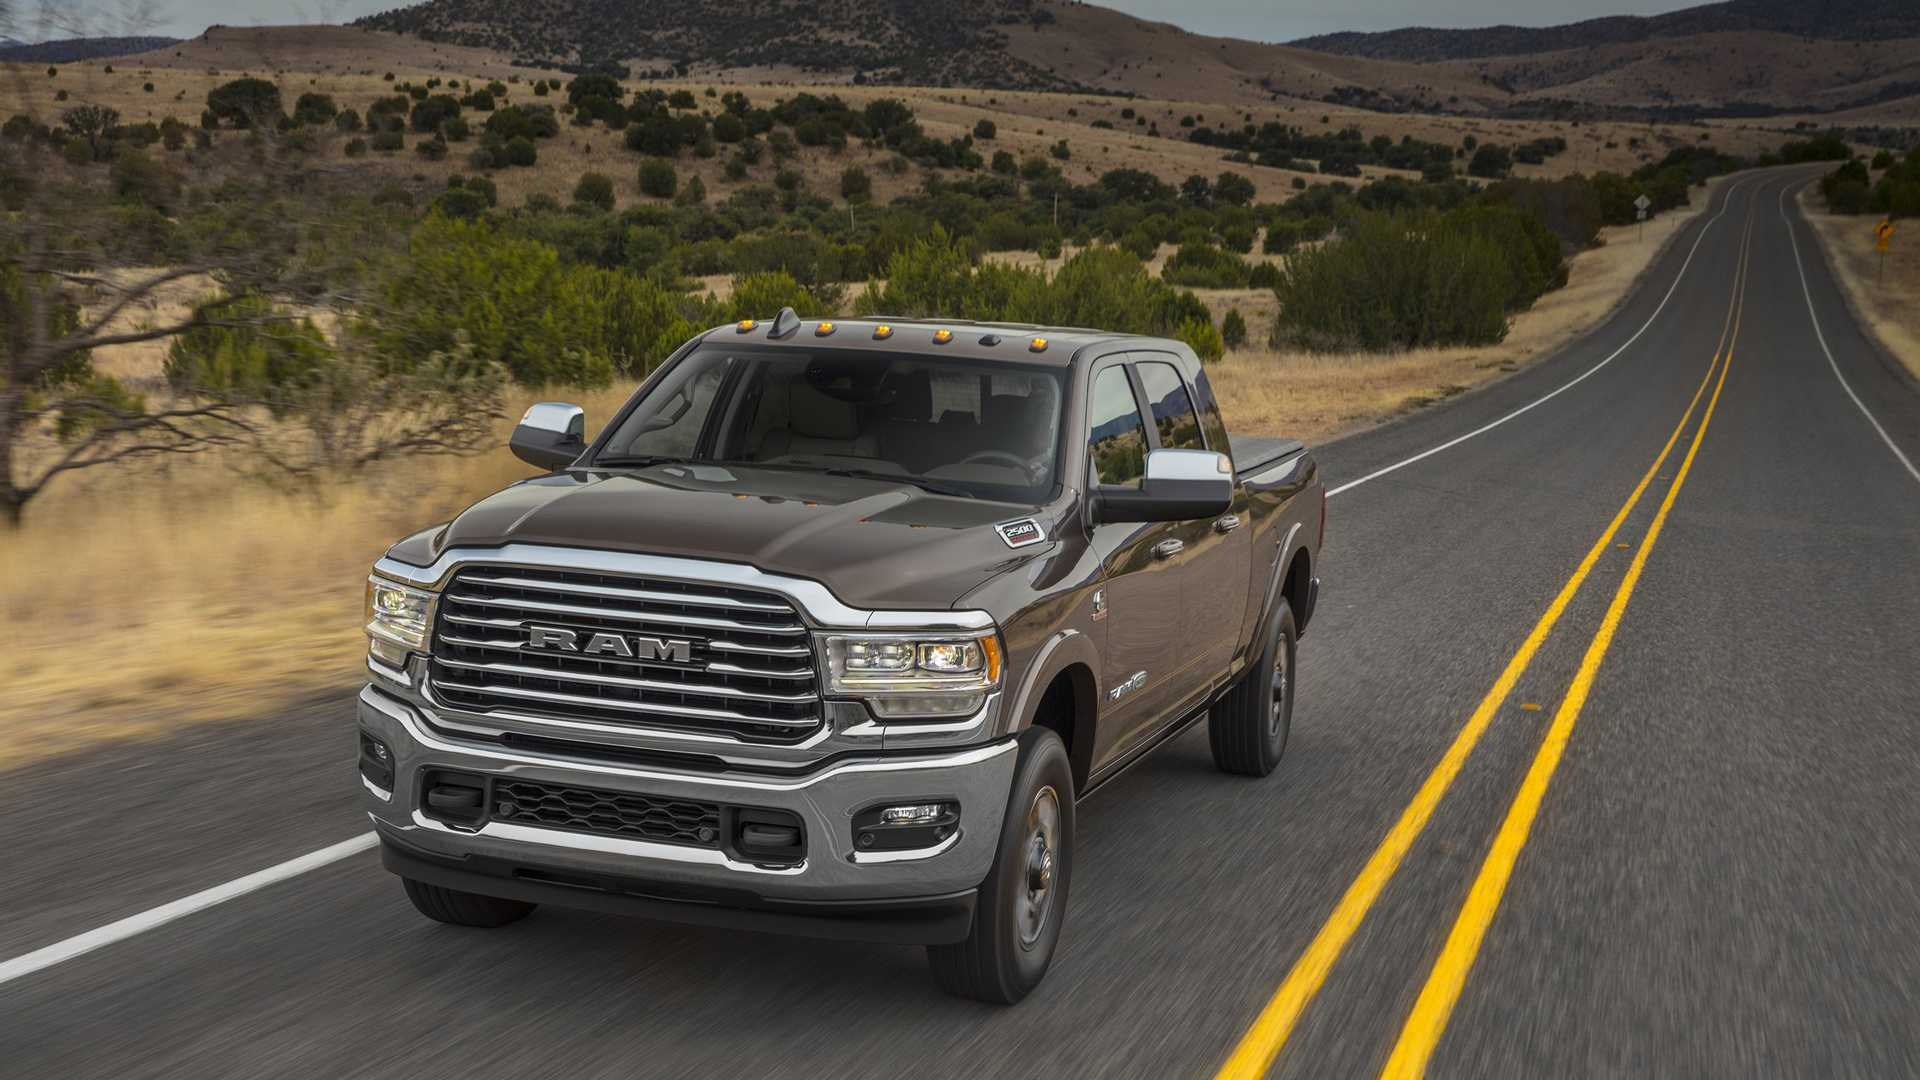 2019 Ram 2500 Heavy Duty Front Three-Quarter Wallpapers (2)